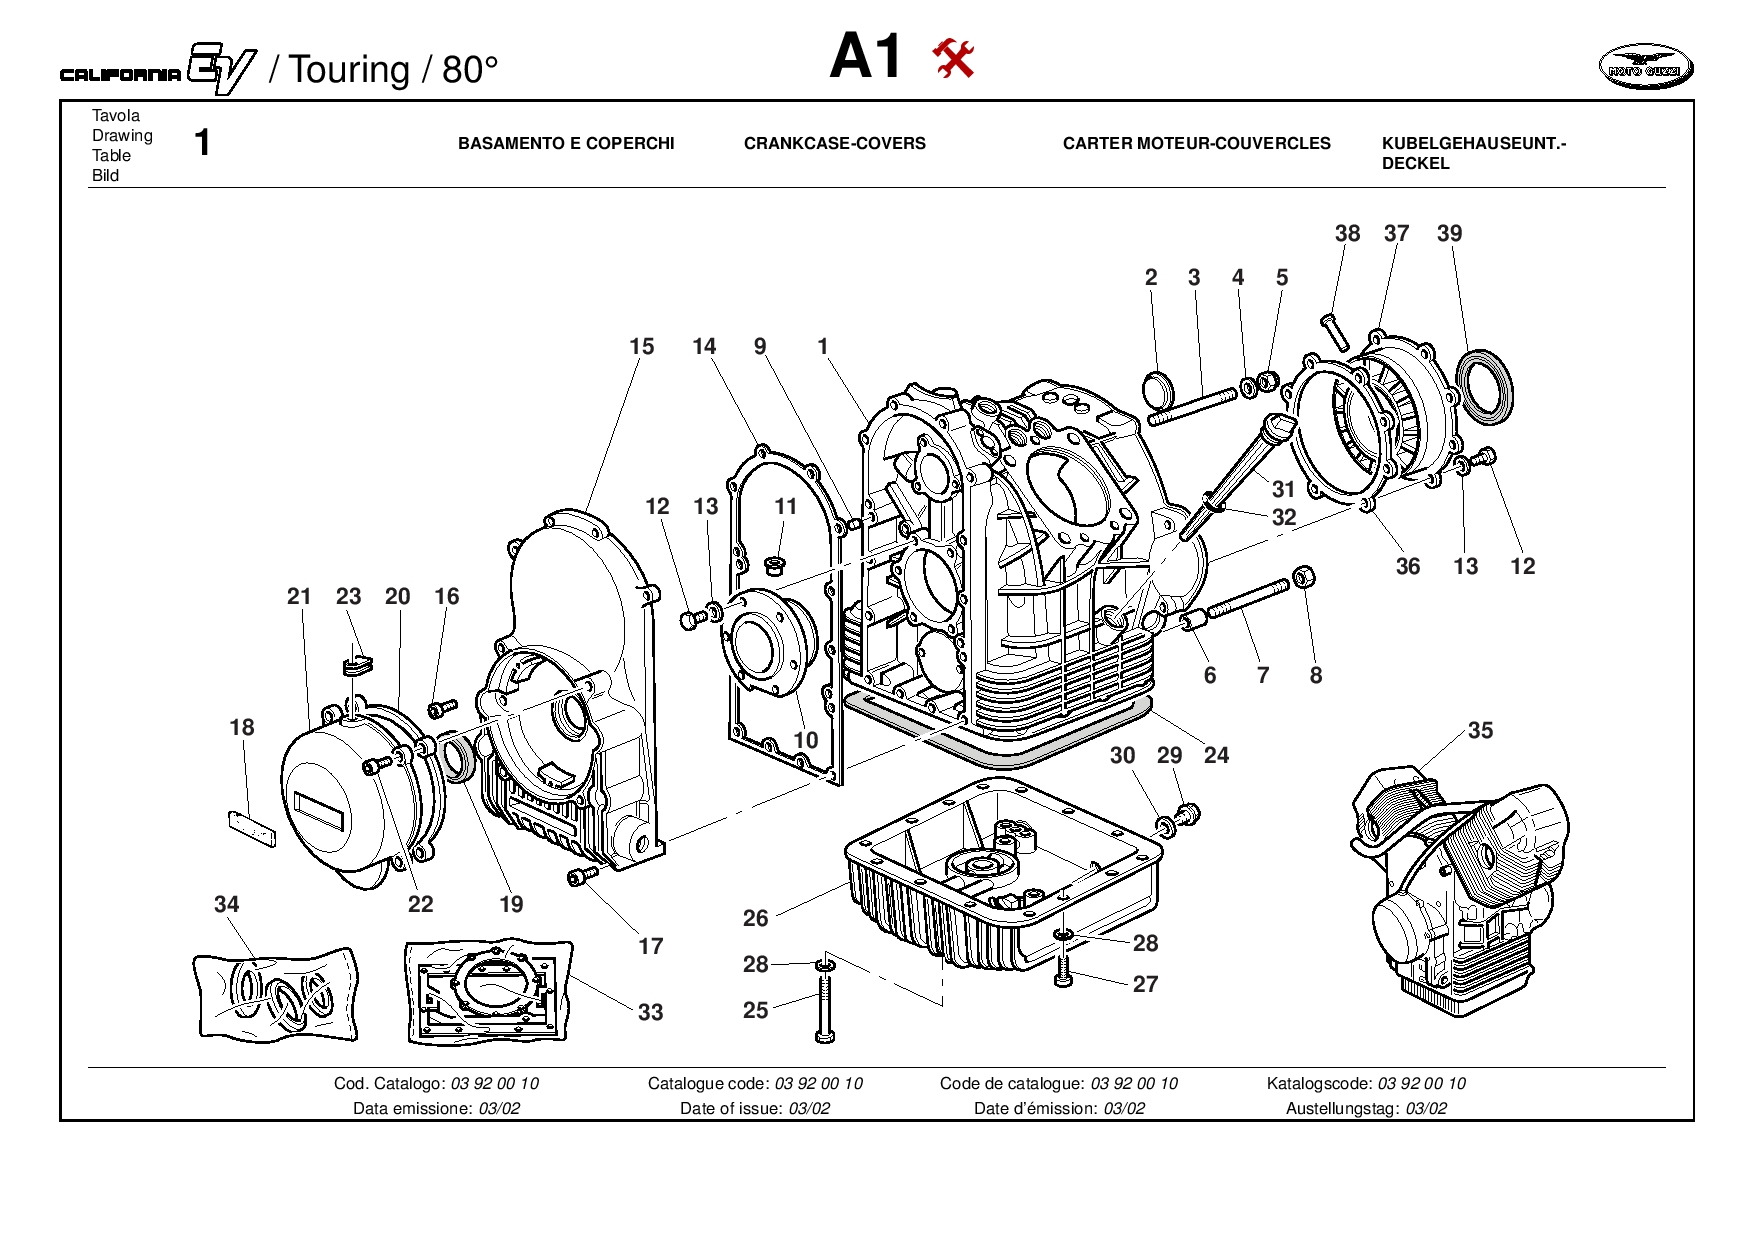 Moto Guzzi California EV Touring 80 2001 Parts List PDF